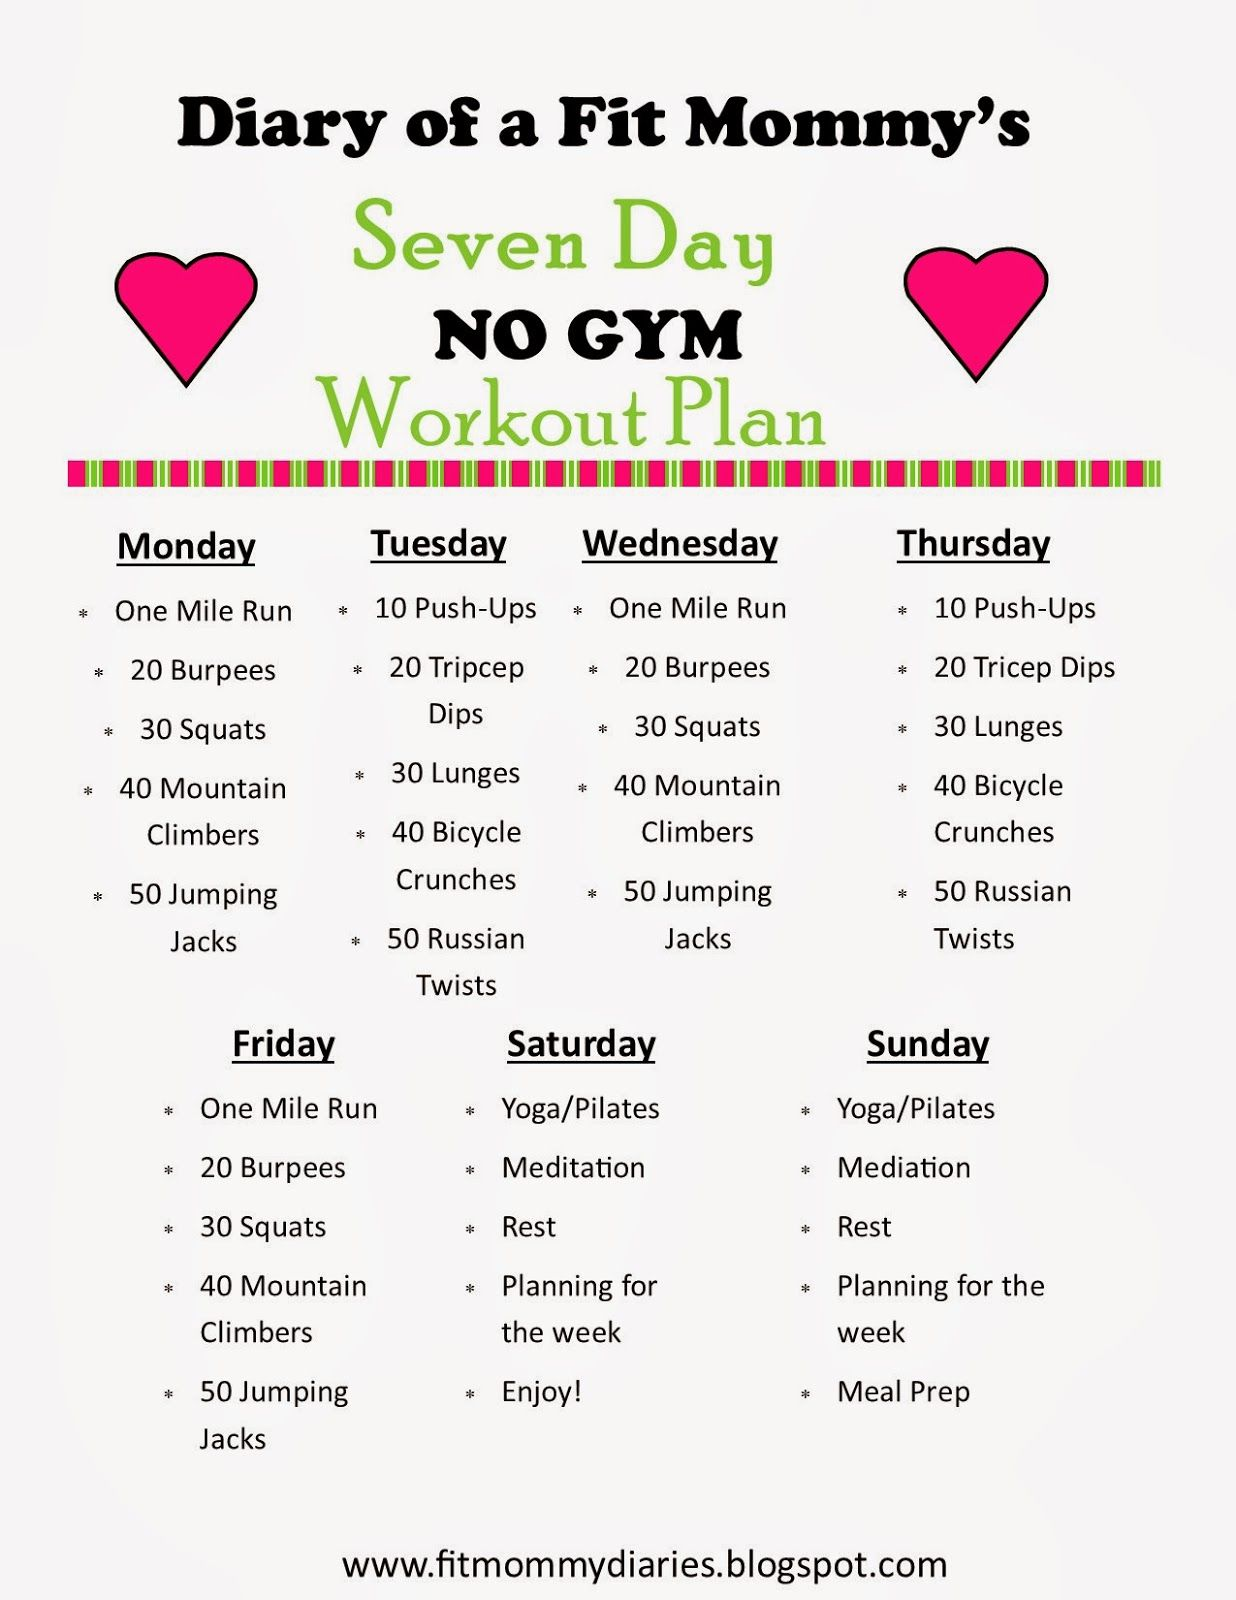 Diary of a Fit Mommy\'s 7 Day NO GYM Workout Plan (Diary of a Fit ...